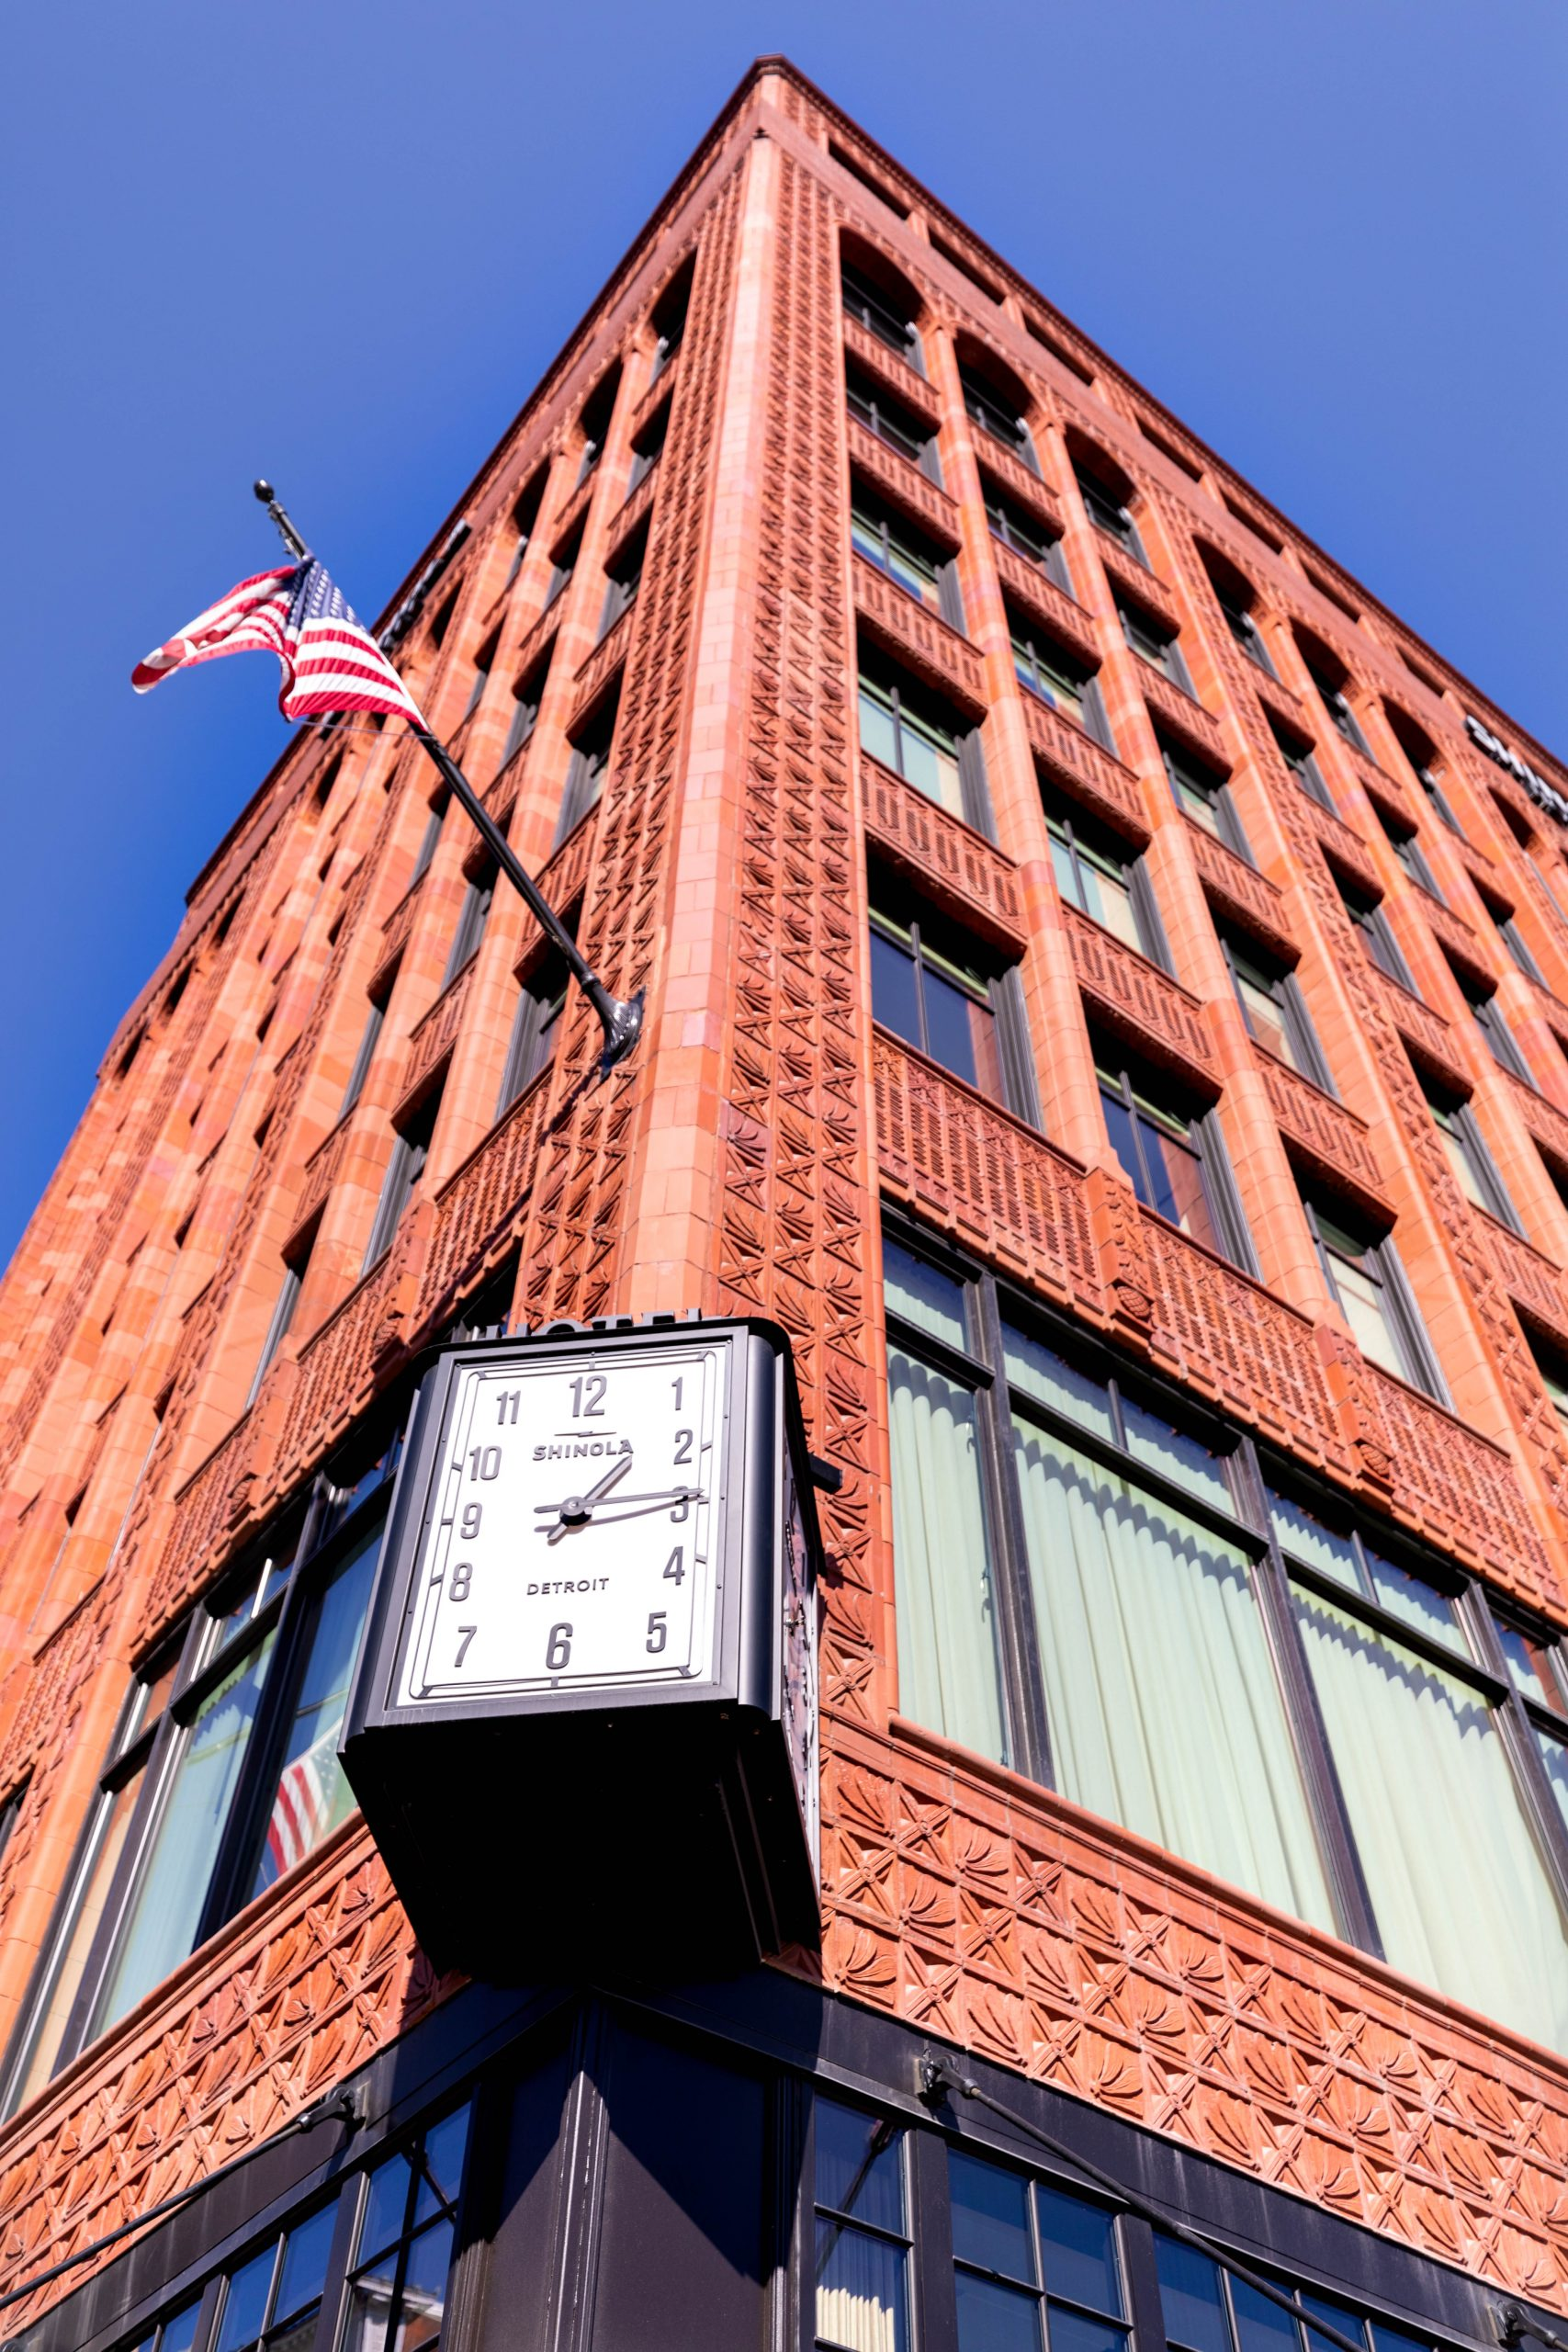 Shinola Clock Tower San Morello Authentic Italian Restaurant in Downtown Detroit Inside Shinola Hotel Written & Photographed by Annie Fairfax